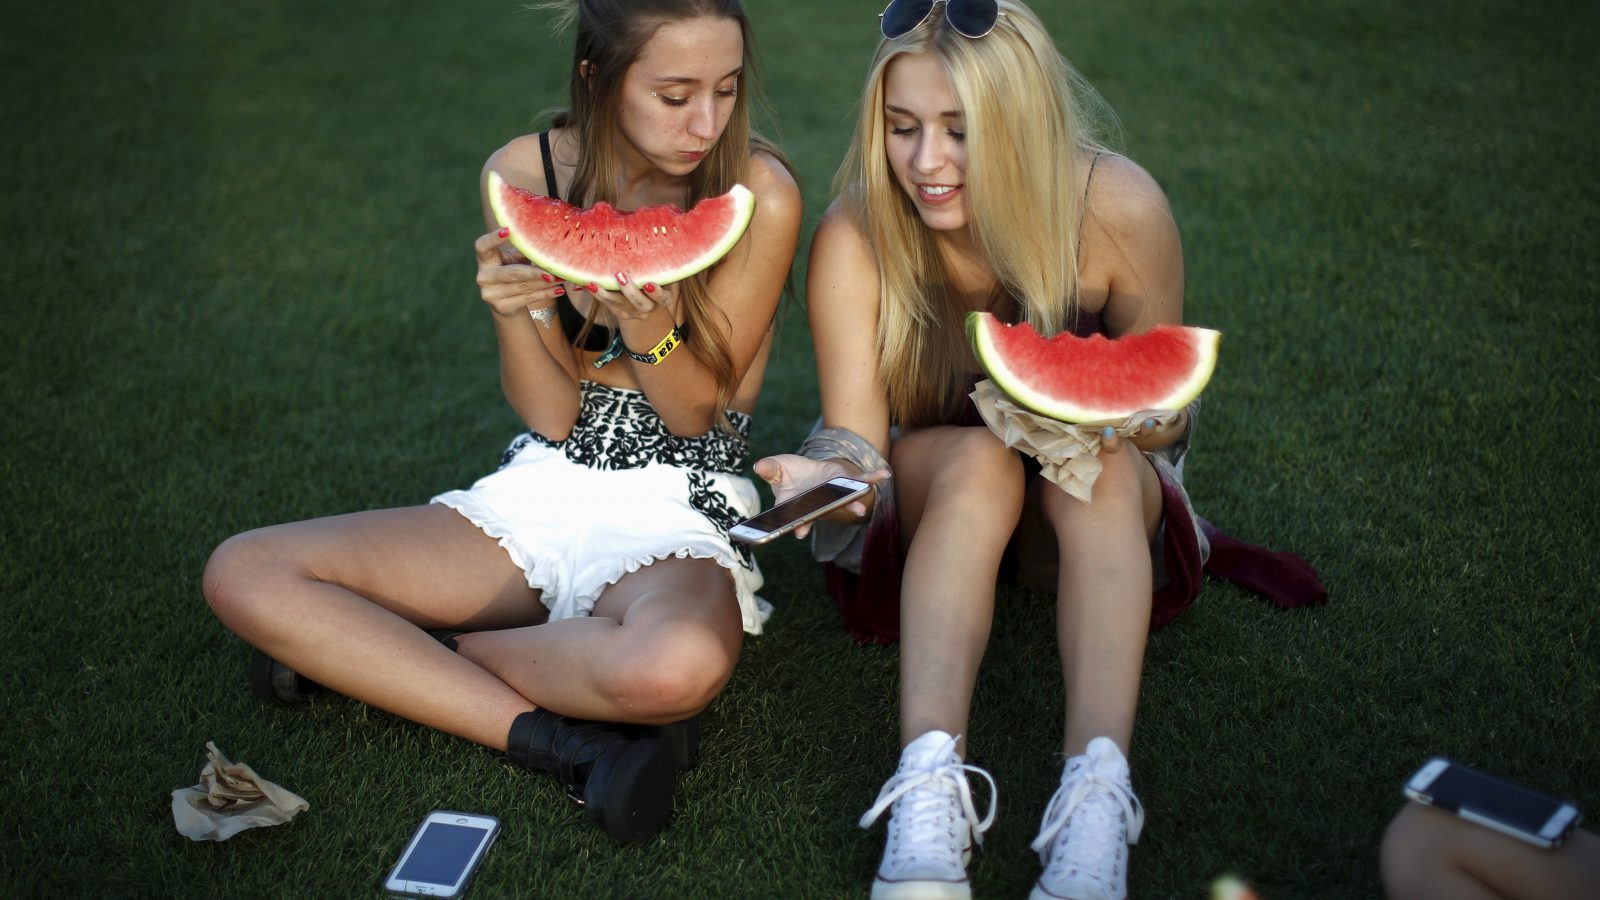 Women eat watermelons at the Coachella Valley Music and Arts Festival in Indio, California April 10, 2015. REUTERS/Lucy Nicholson - RTR4WW3U